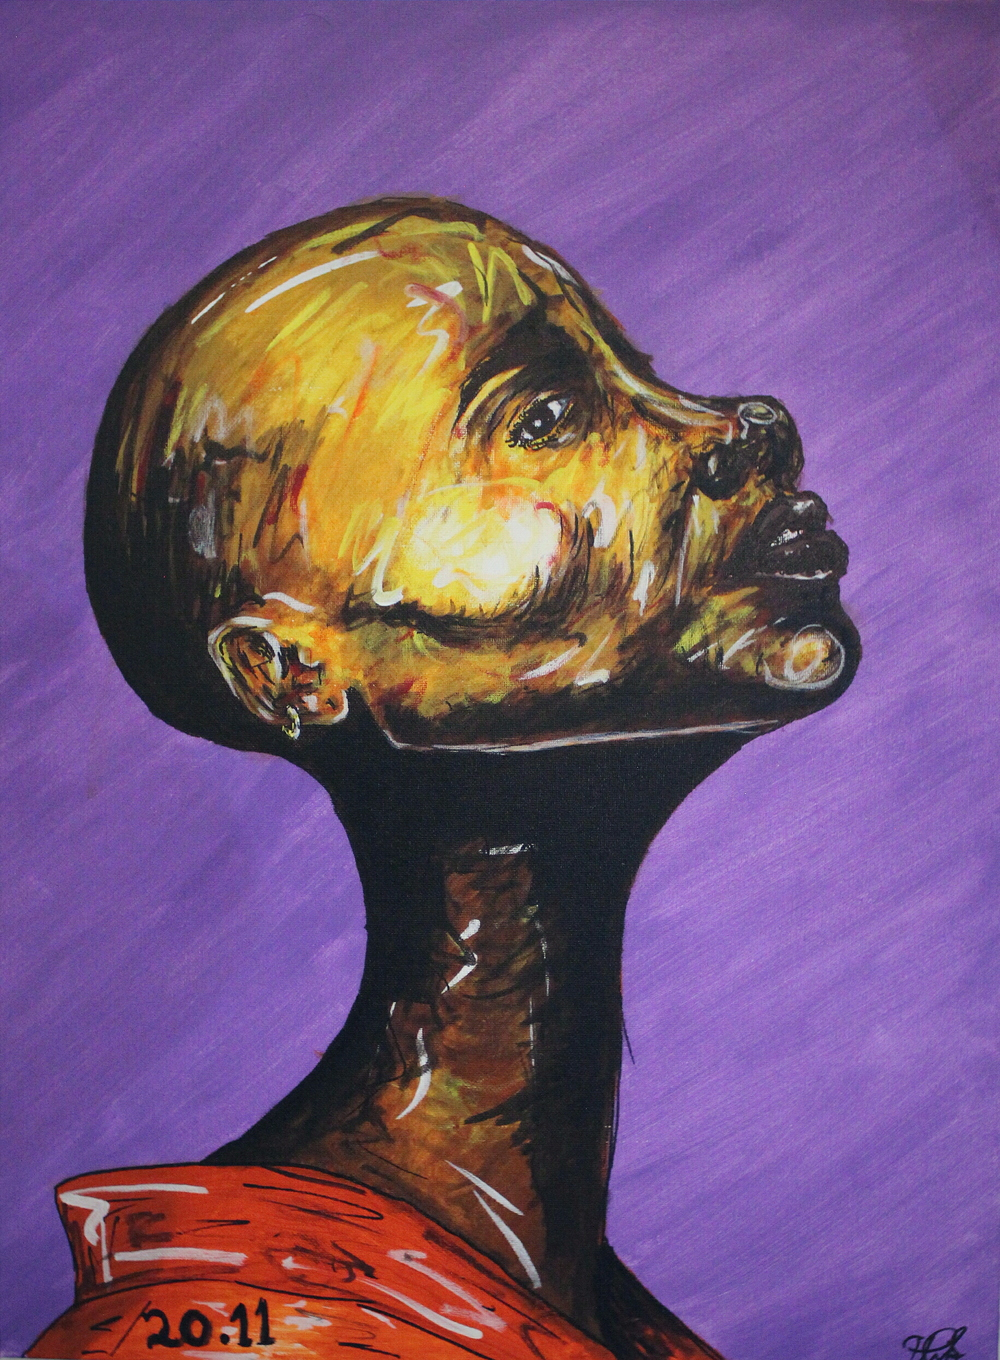 i  vrede.in.pyn : peace in pain  gunna  acrylic on canvas